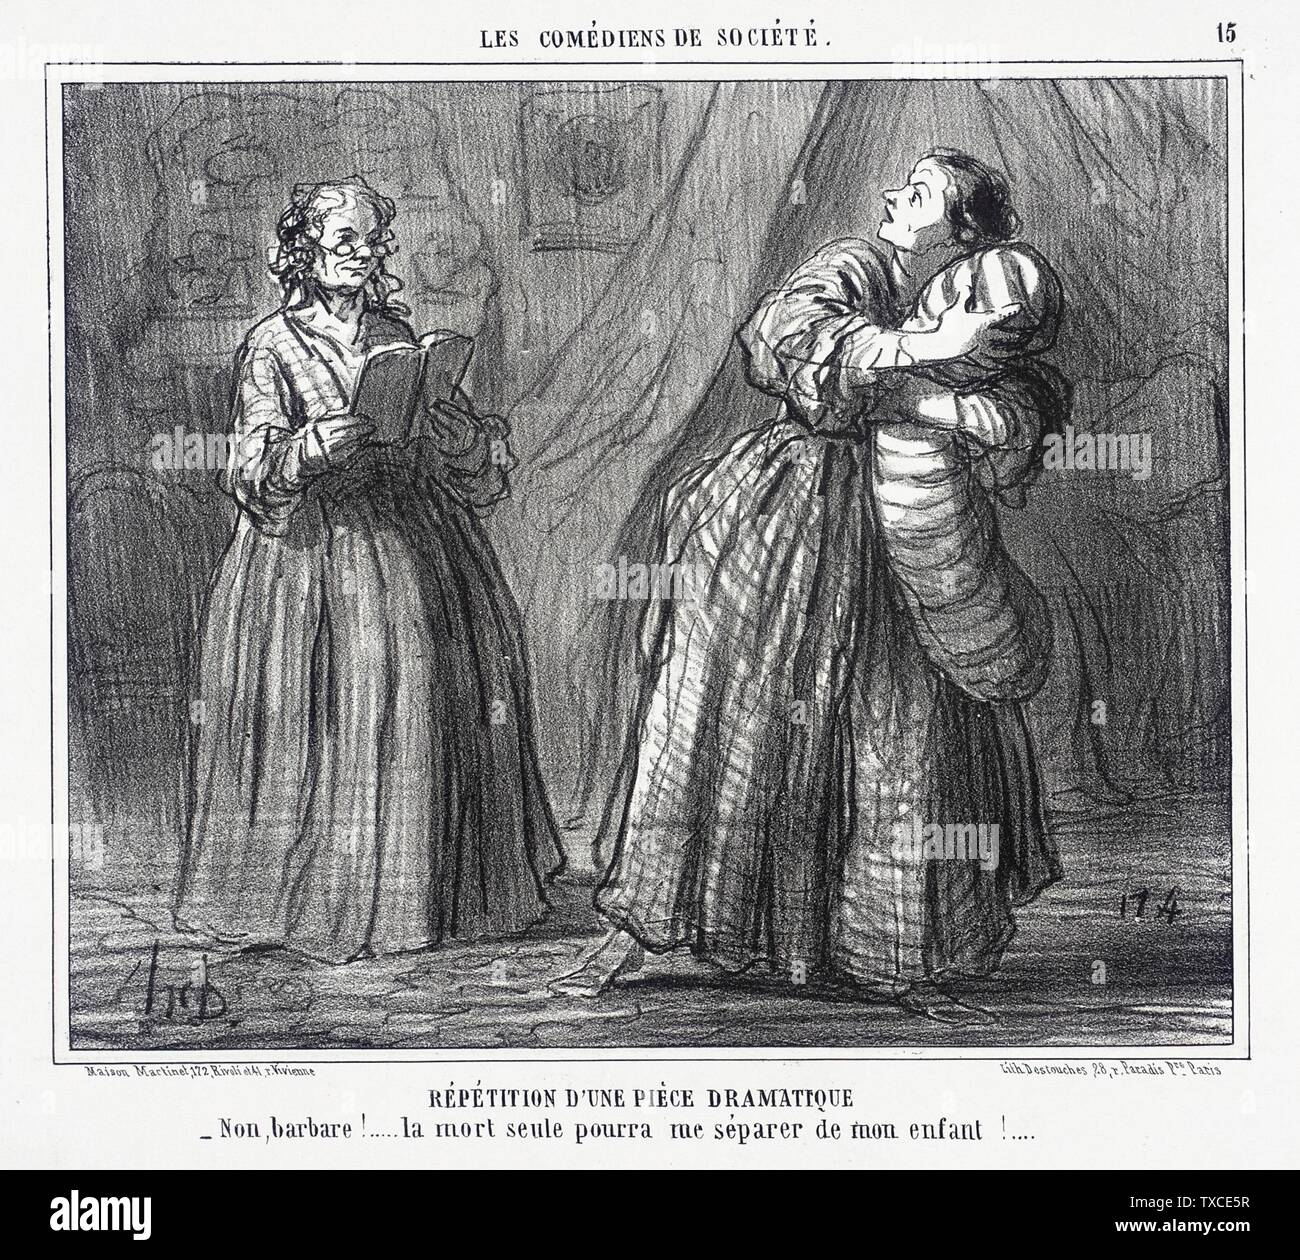 'Répétition d'une pièce dramatique; English:  France, 1858 Series: Les Comédiens de Société, no. 15 Periodical: Le Charivari, 14 May 1858 Prints; lithographs Lithograph Sheet: 8 1/4 x 9 13/16 in. (20.96 x 24.92 cm) Gift of Mrs. Florence Victor from The David and Florence Victor Collection (M.91.82.80) Prints and Drawings; 1858date QS:P571,+1858-00-00T00:00:00Z/9; ' - Stock Image